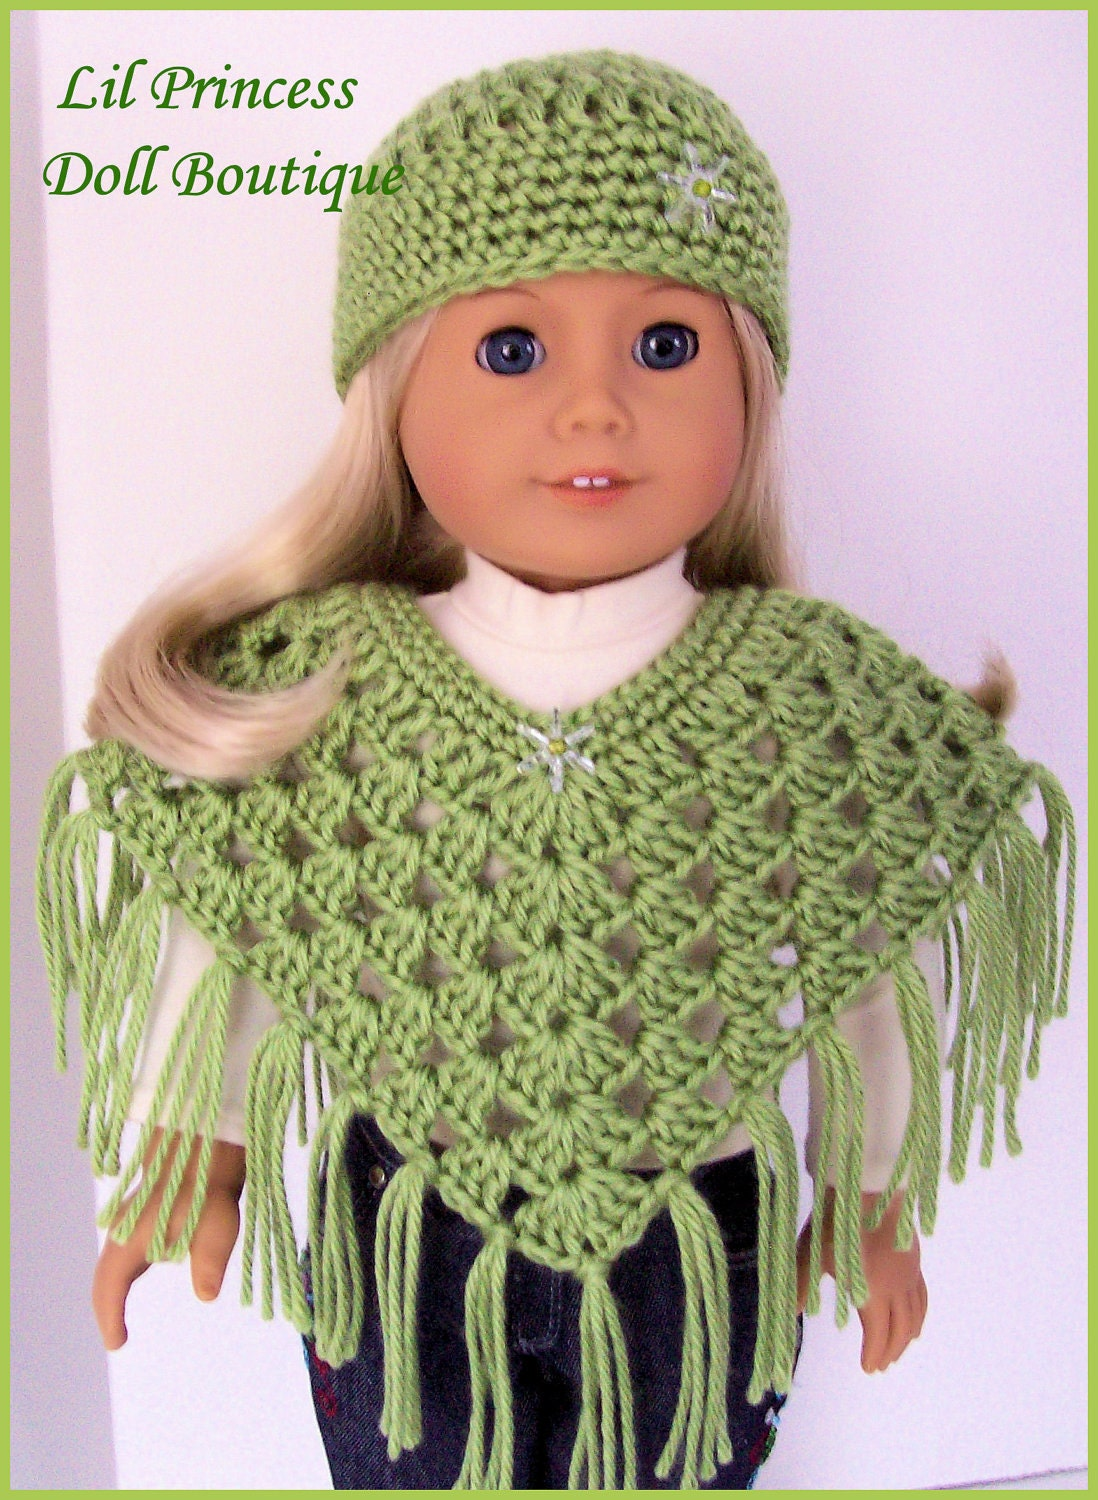 Crochet american girl doll clothes | Shop crochet american girl